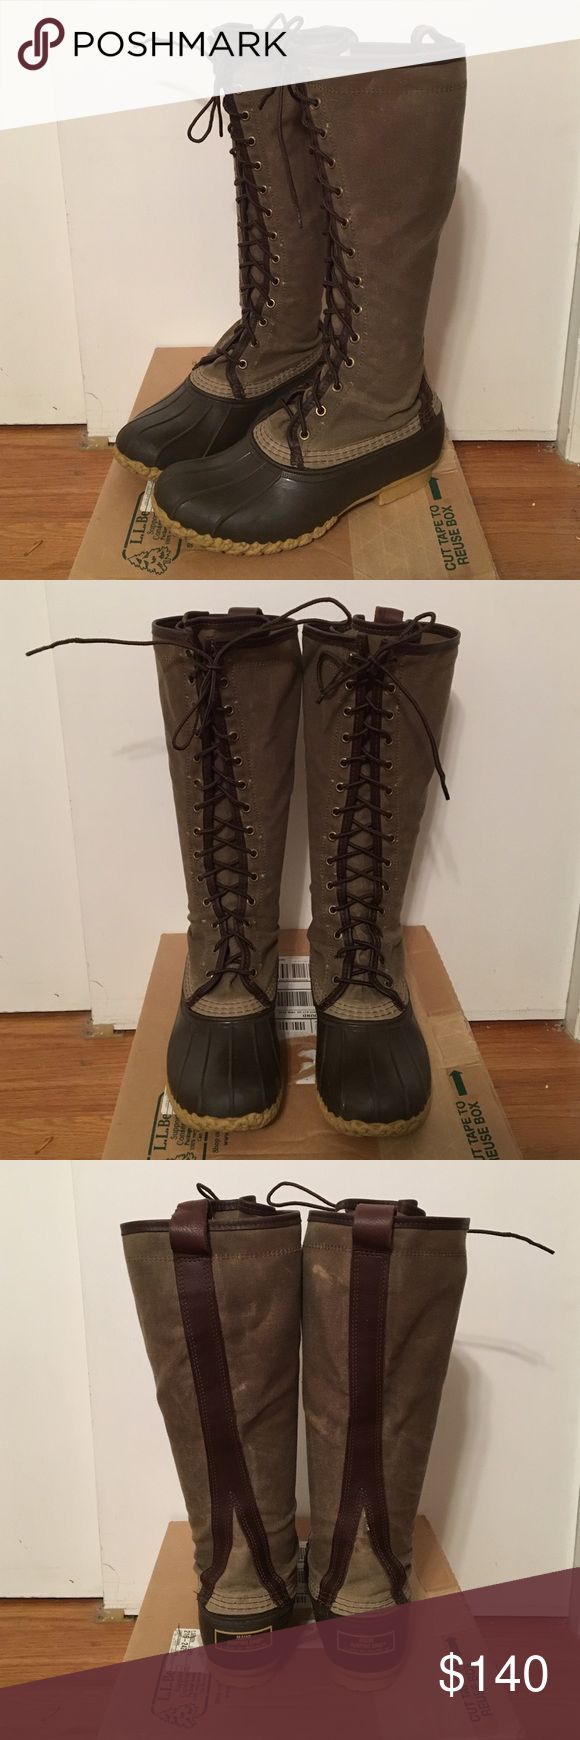 """Women's L.L. Bean Waxed Canvas Maine Hunting Boot Women's L.L. Bean 16"""" Waxed Canvas Maine Hunting Boot. Size 8M. Very good used condition. Color is Marsh Brown/Brown. Will come in original box it was shipped in. Lastly, NO TRADES! L.L. Bean Shoes Winter & Rain Boots"""